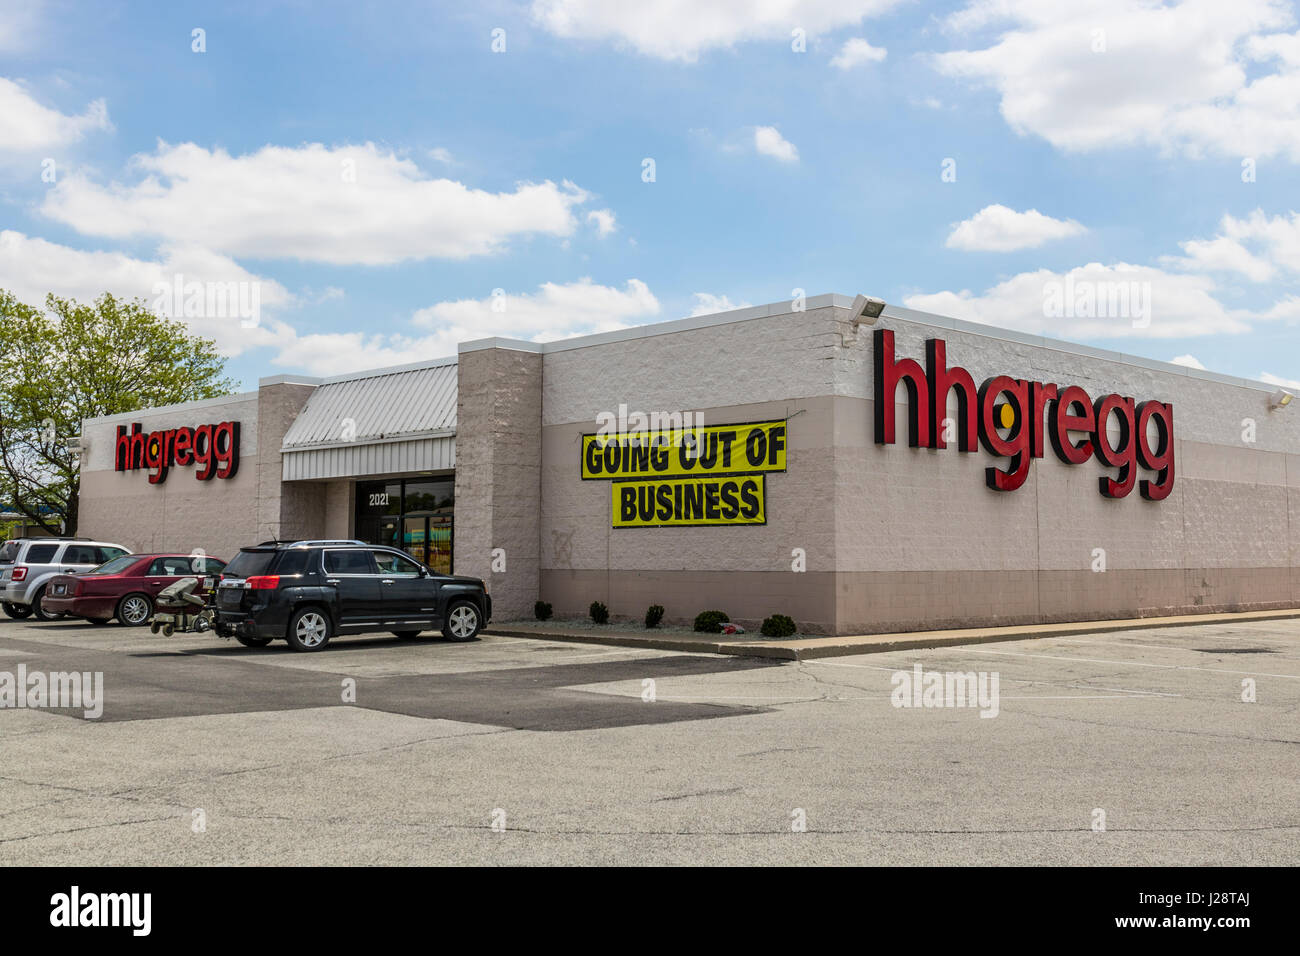 Hhgregg Hh Gregg High Resolution Stock Photography And Images Alamy